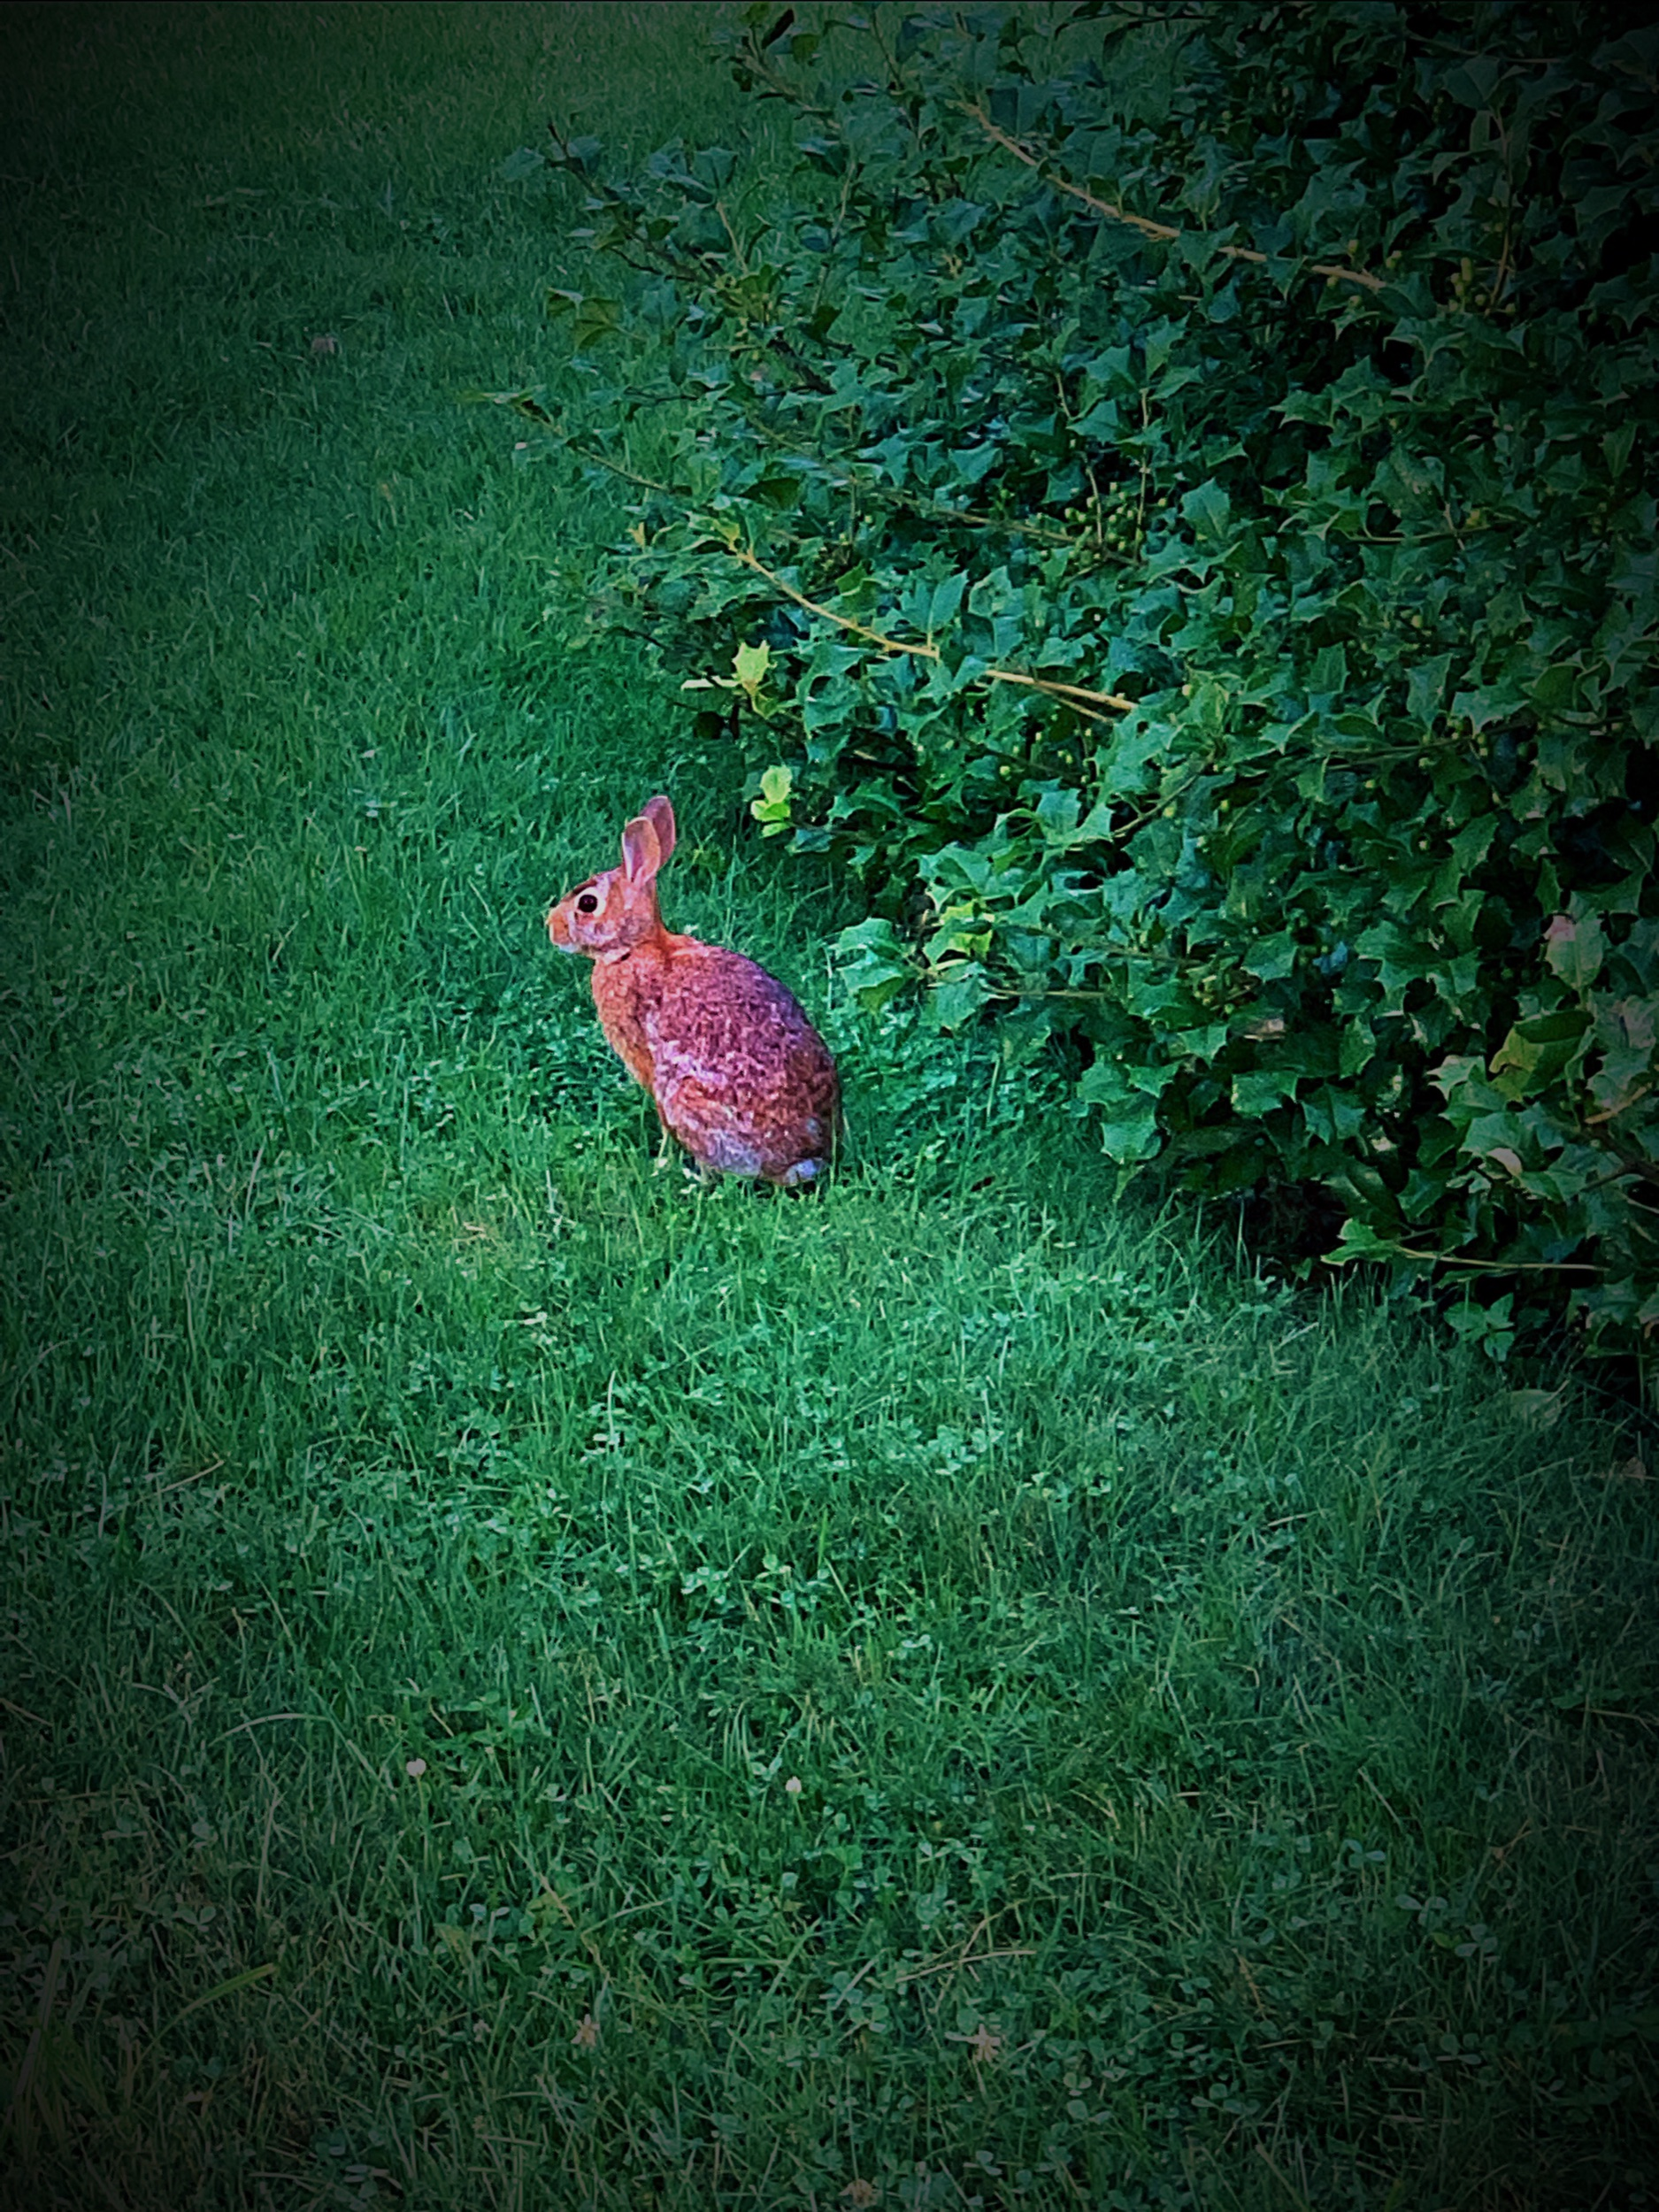 August 15, 2019 - A visitor to my yard (from my walk this morning).